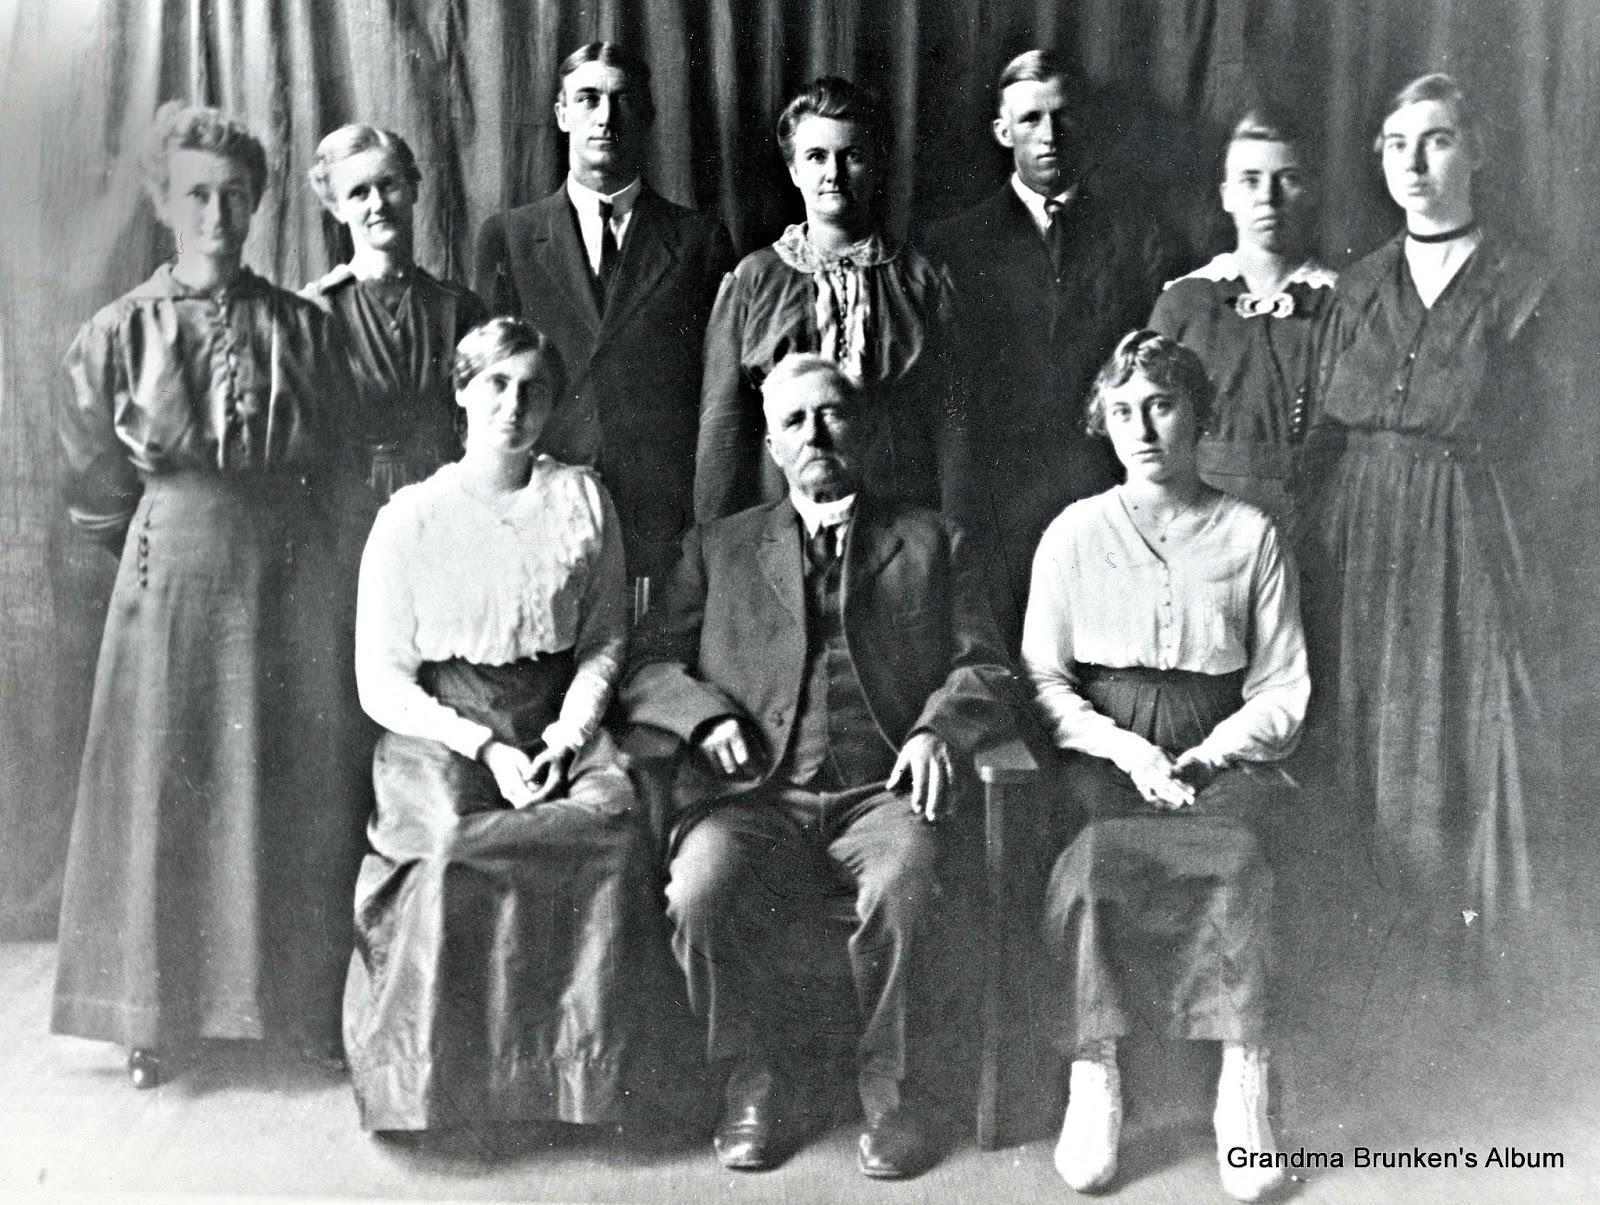 Carsten Petersen, Sr. Family - Circa 1918